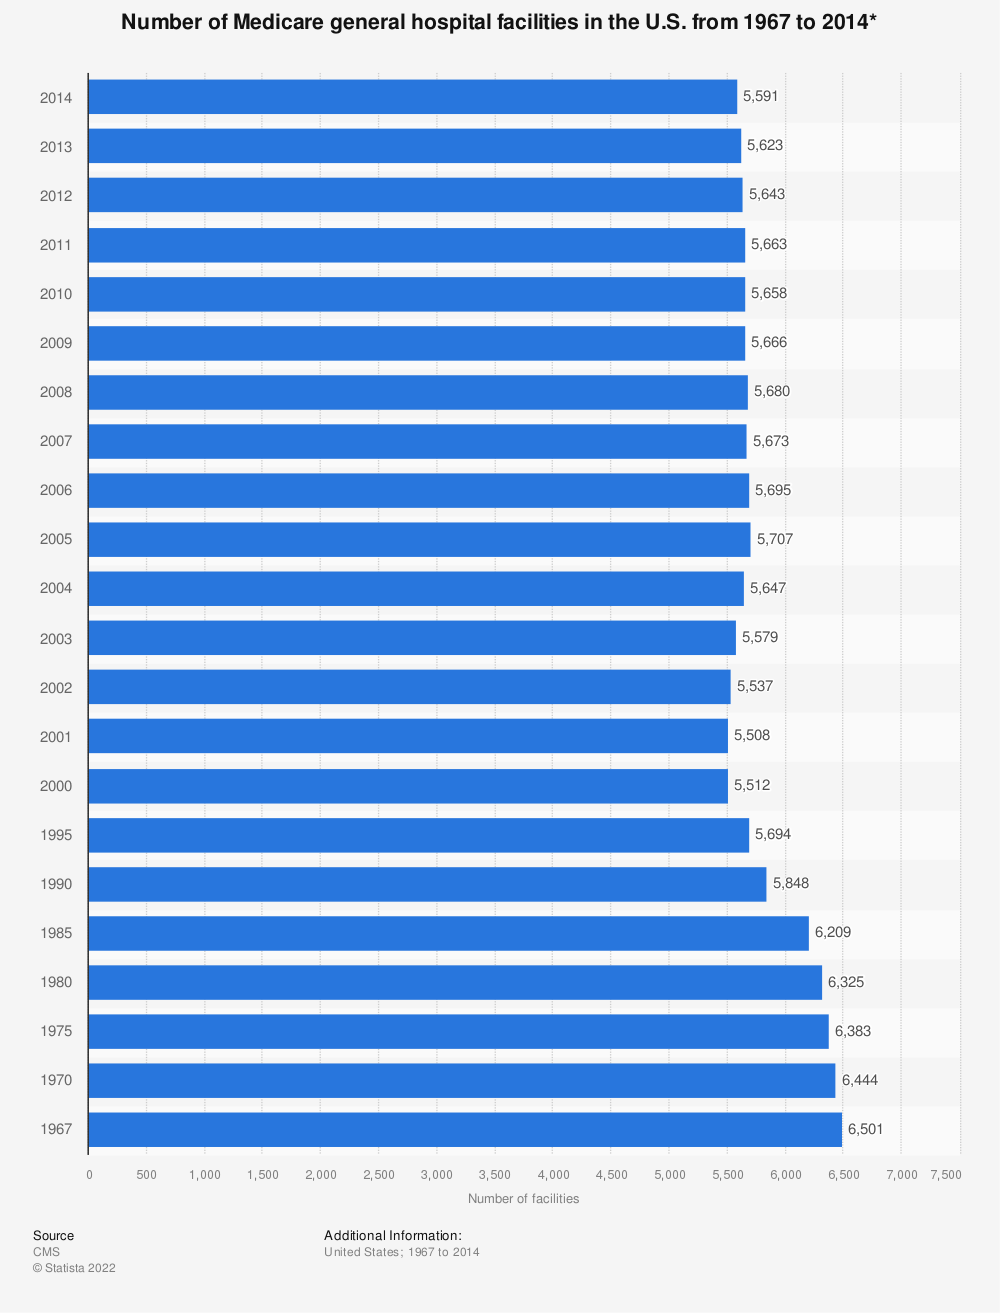 Statistic: Number of Medicare general hospital facilities in the U.S. from 1967 to 2014* | Statista